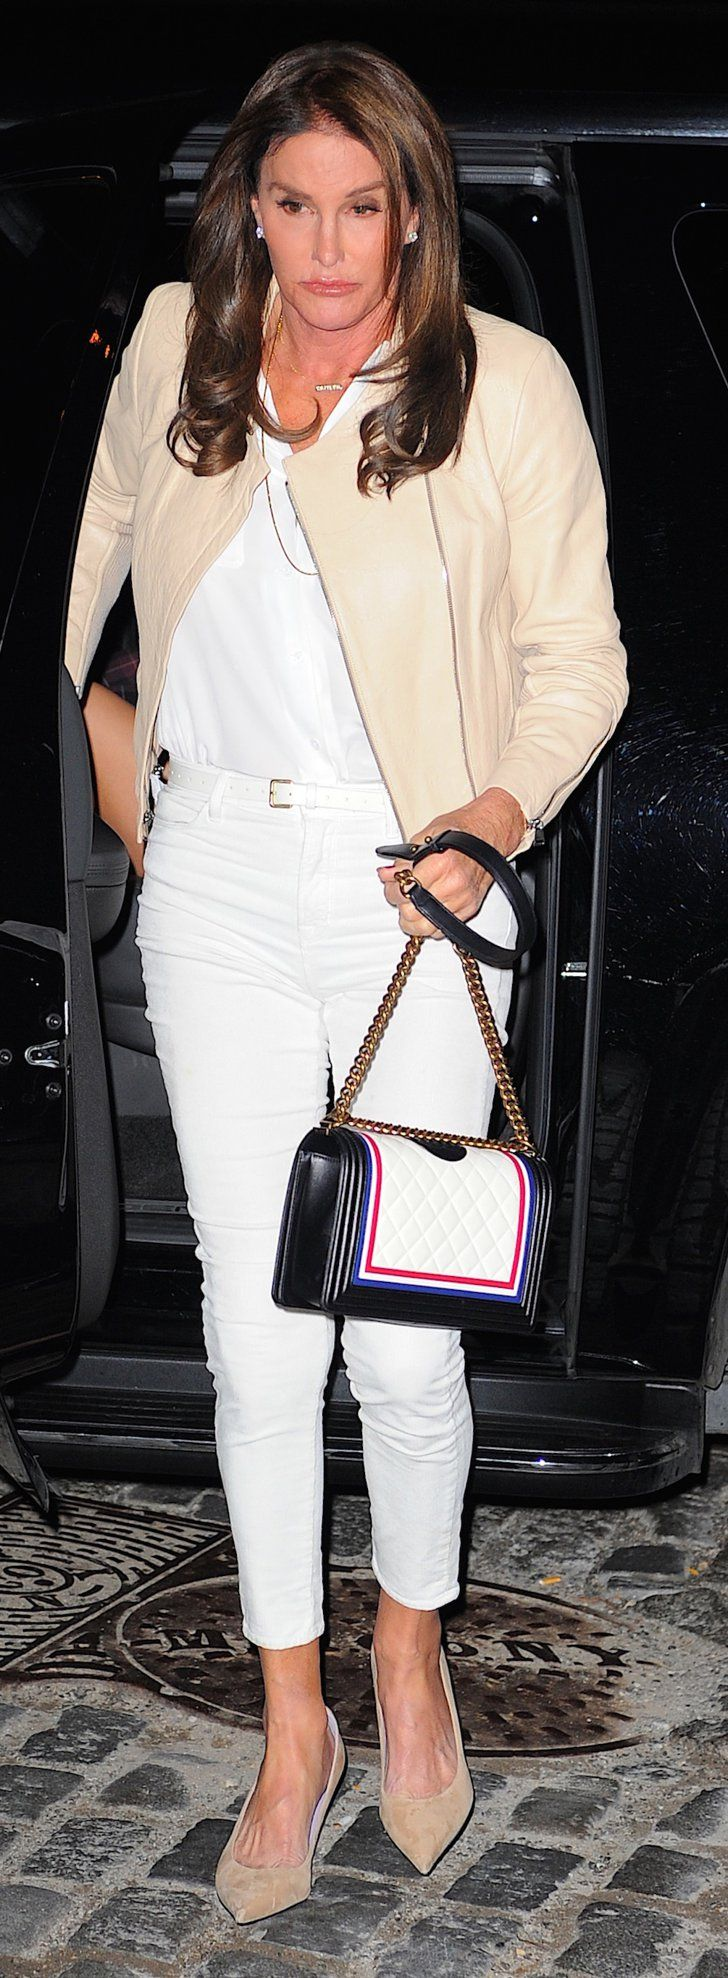 Caitlyn Jenner's Holding Onto the New Chanel Bag of Your Dreams